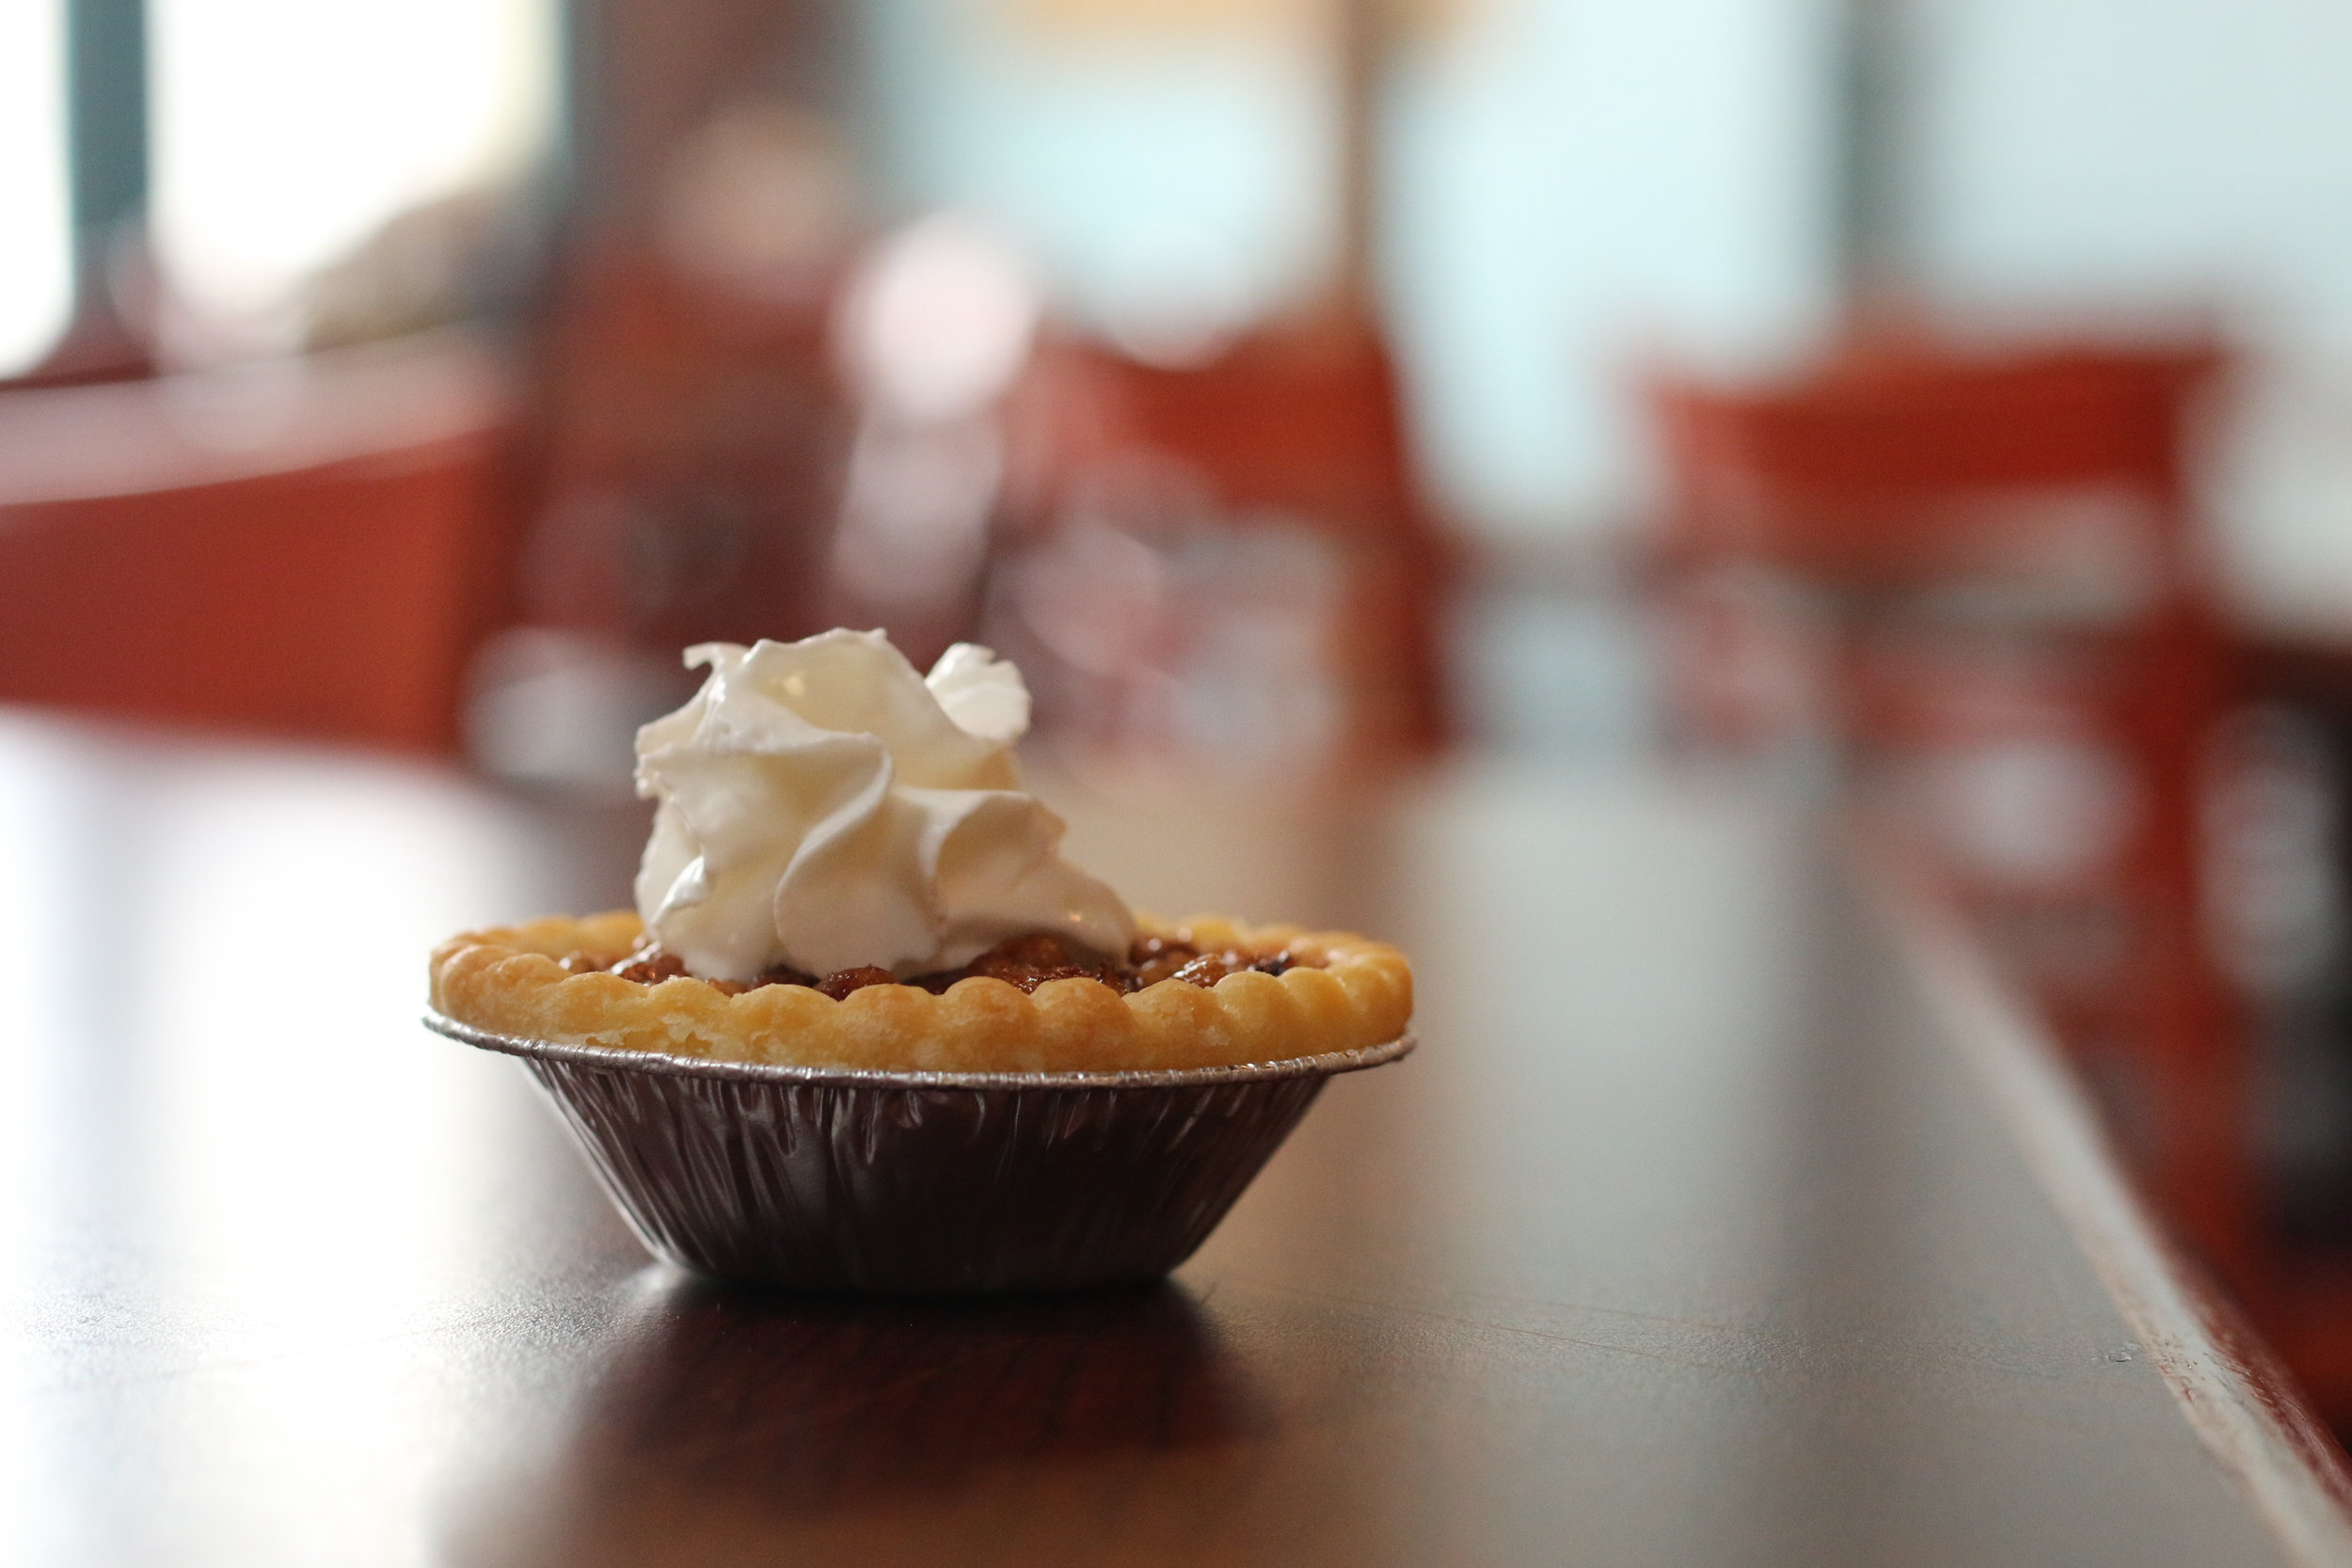 Bite-size pies are at your fingertips.